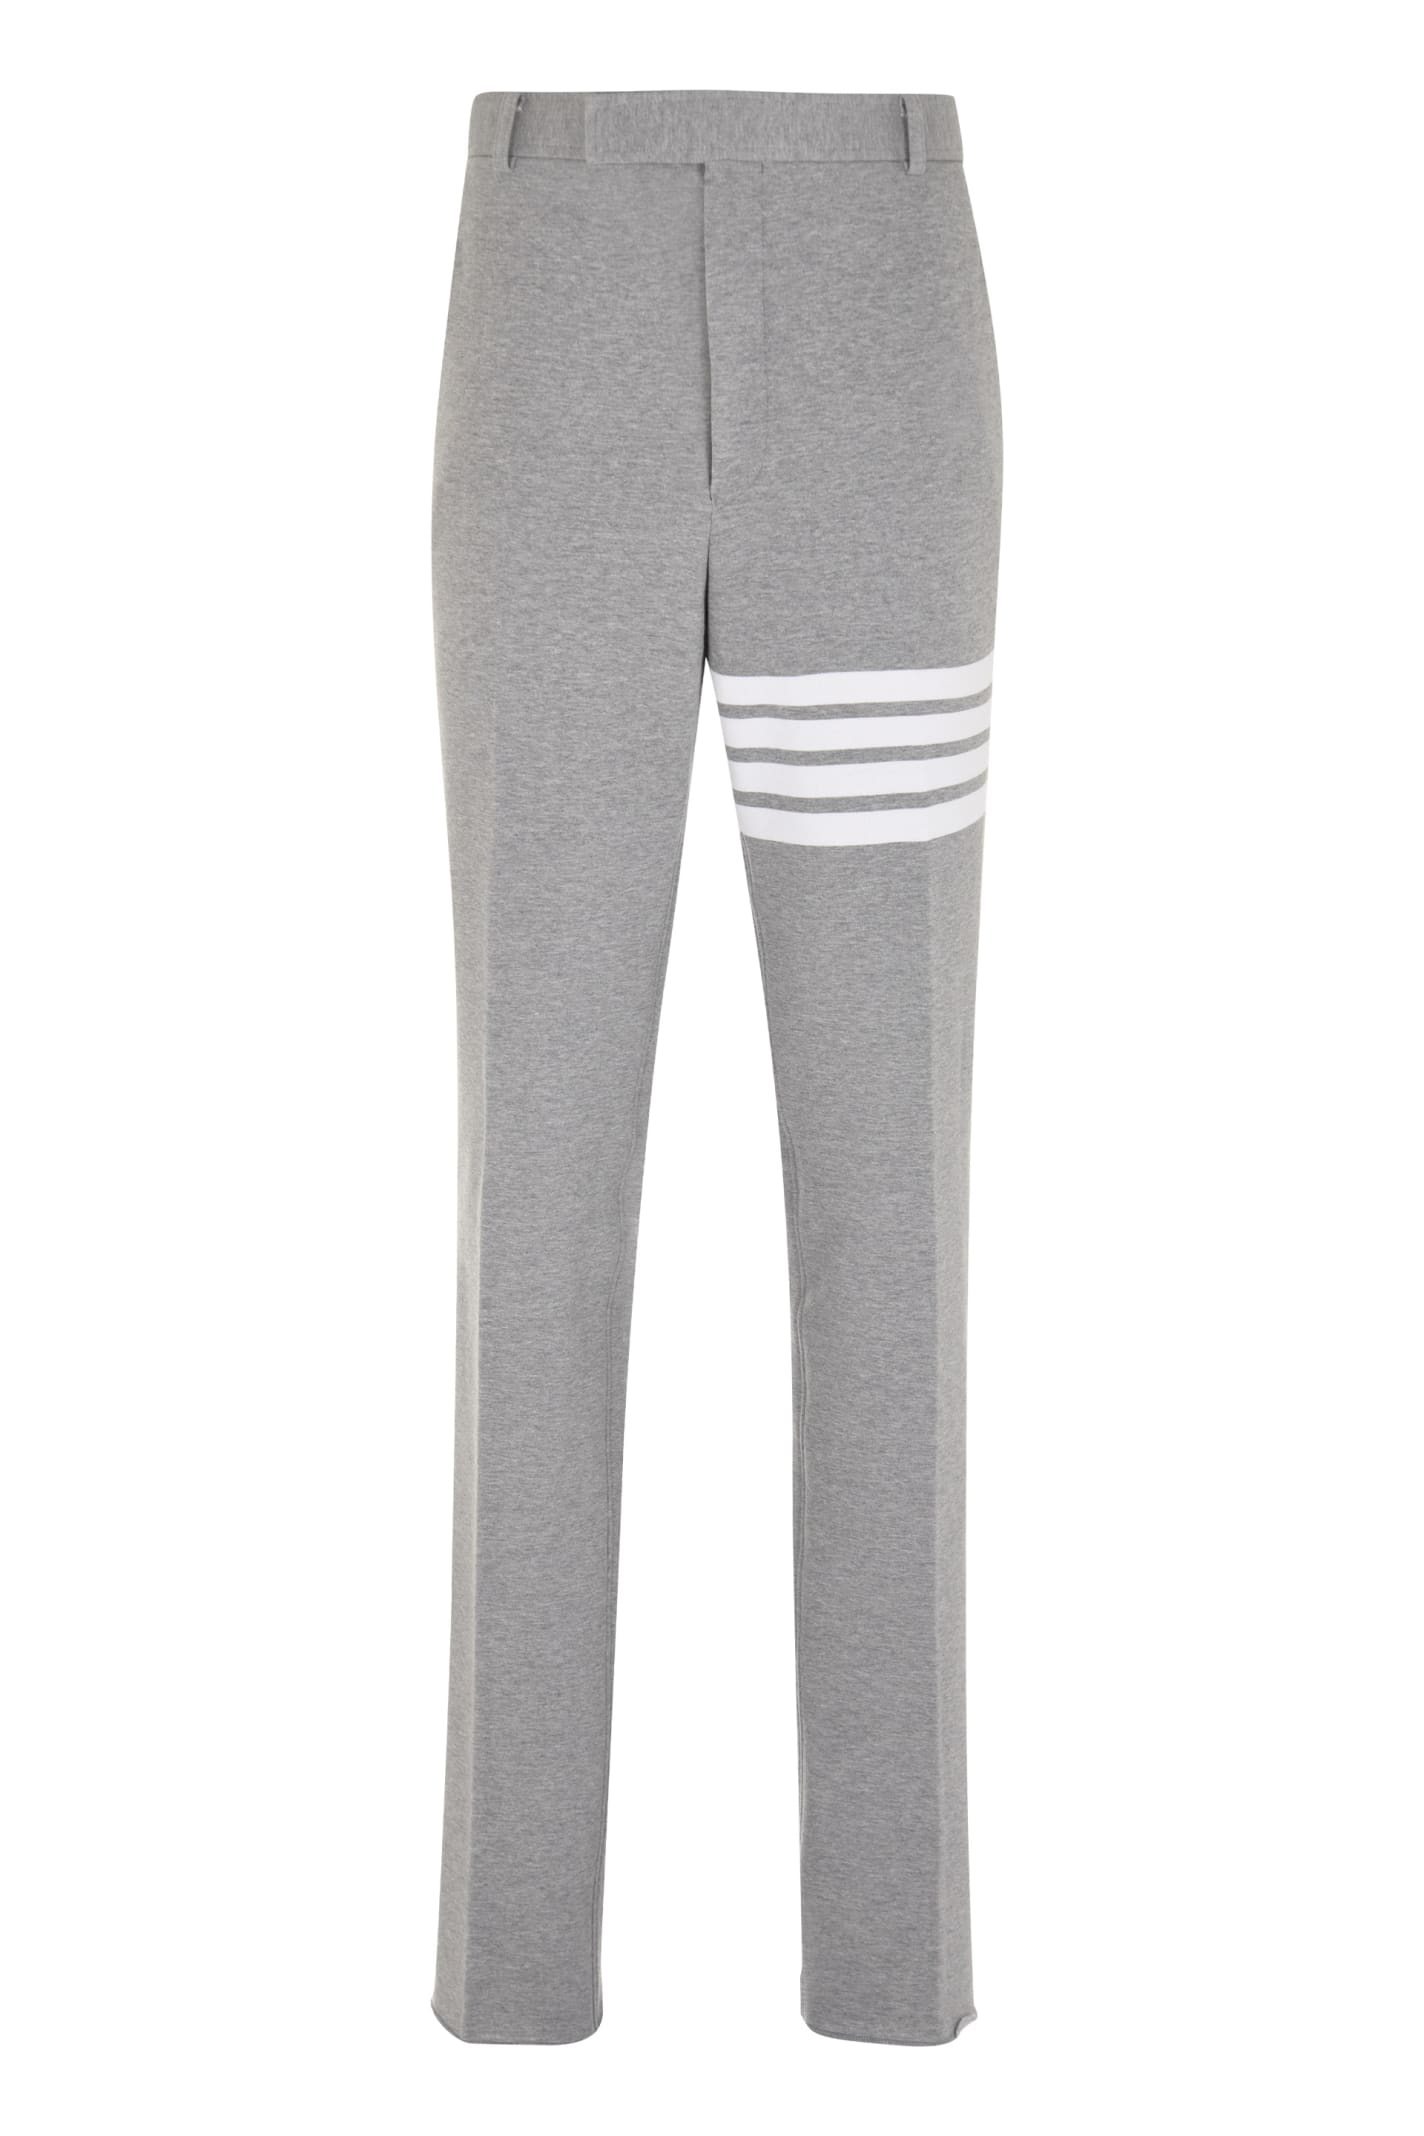 Thom Browne Cotton Chino Trousers In Grey